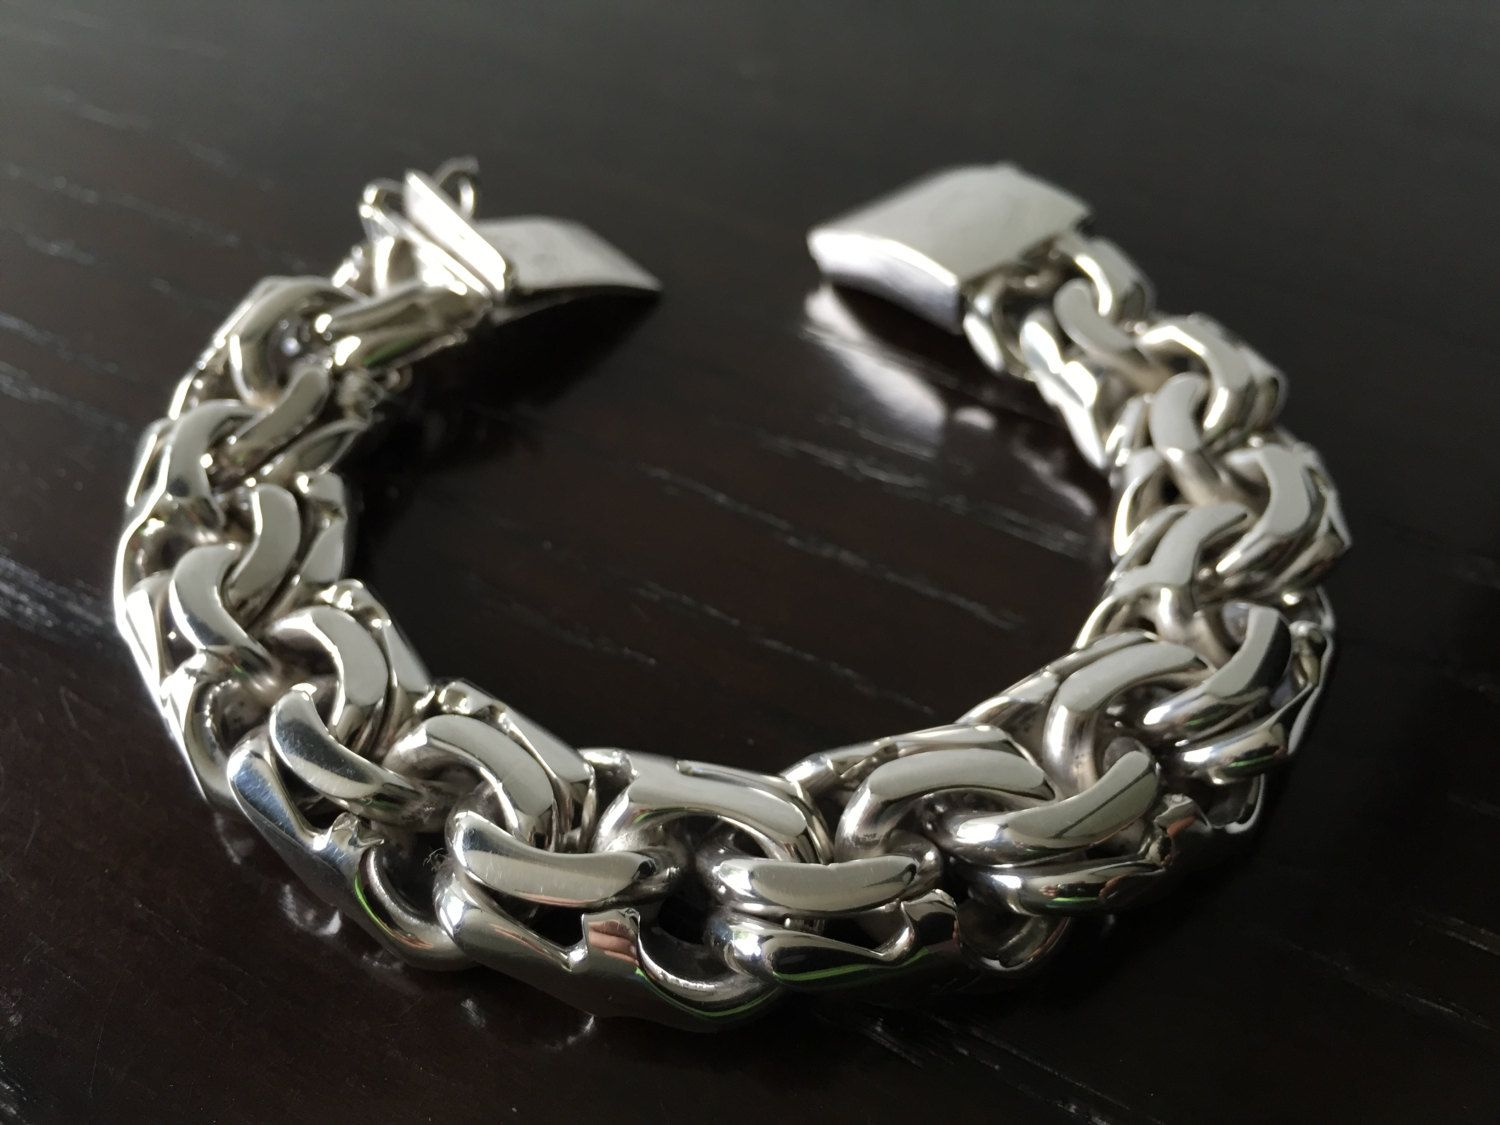 Mens 925 Sterling Silver Thick And Heavy Chain Link Bracelet Chinese Model Handmade De Artesanosmex En Etsy